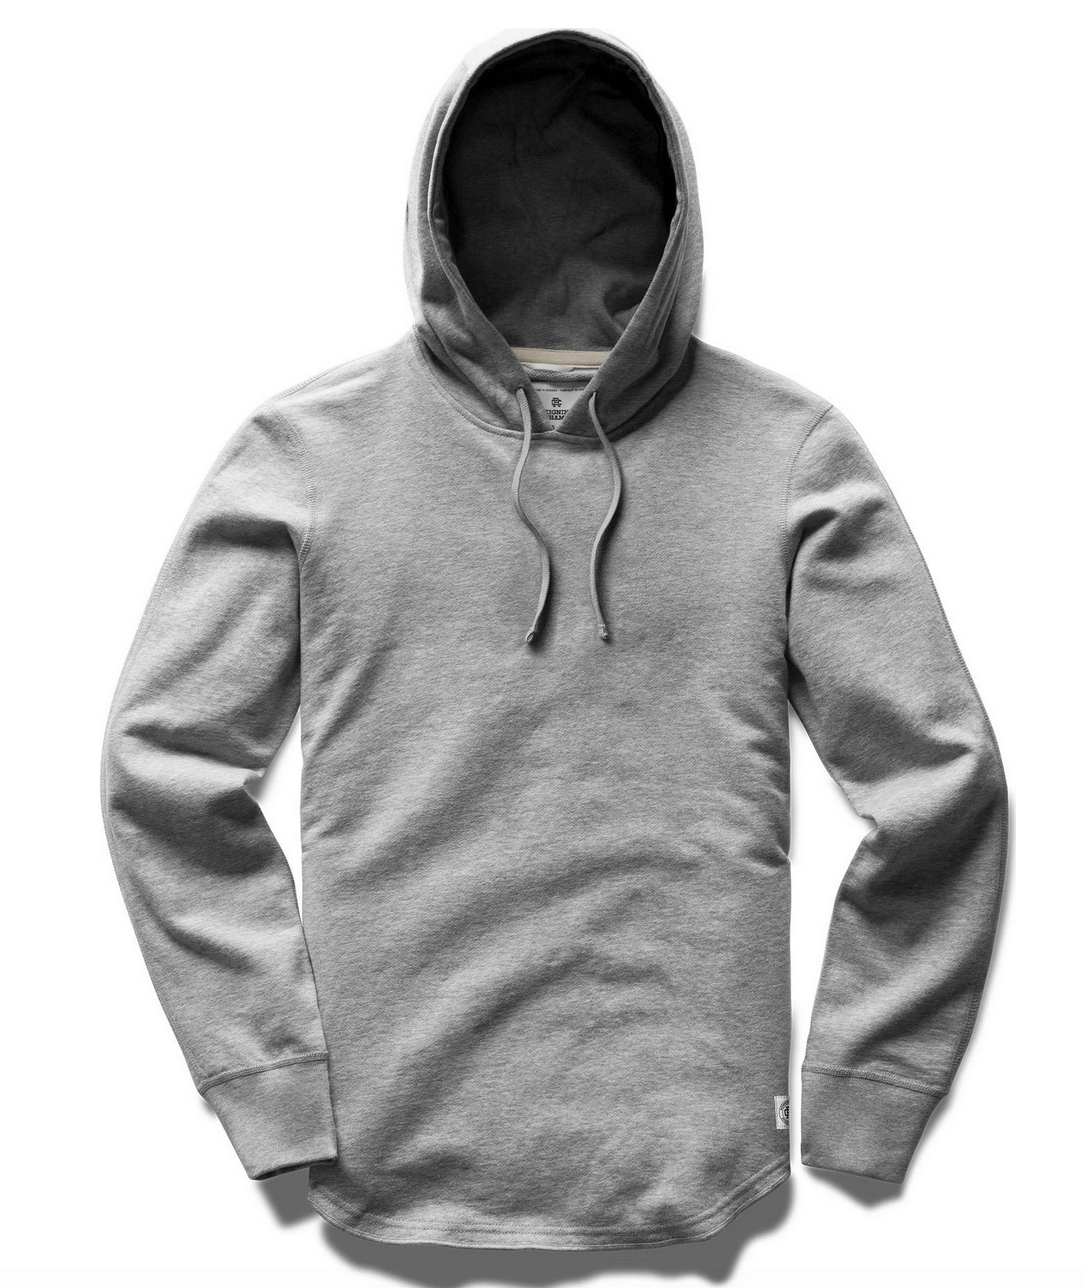 Reigning Champ Scalloped Hoodie Midweight Terry / I prefer baggy and warm, while others may want tanks